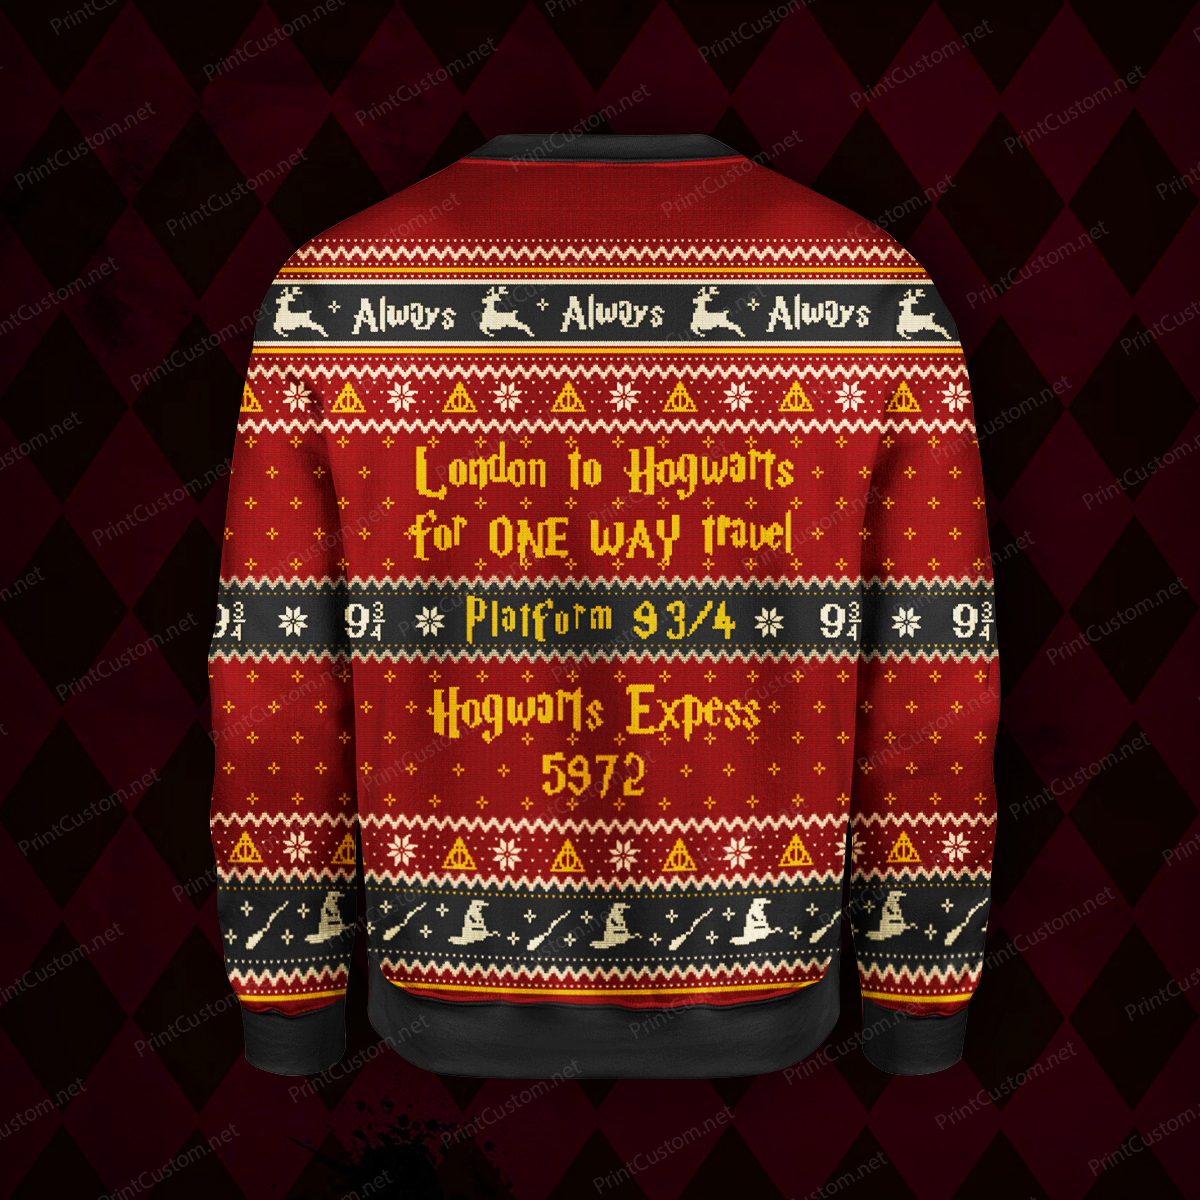 King's cross station harry potter full printing ugly christmas sweater 4